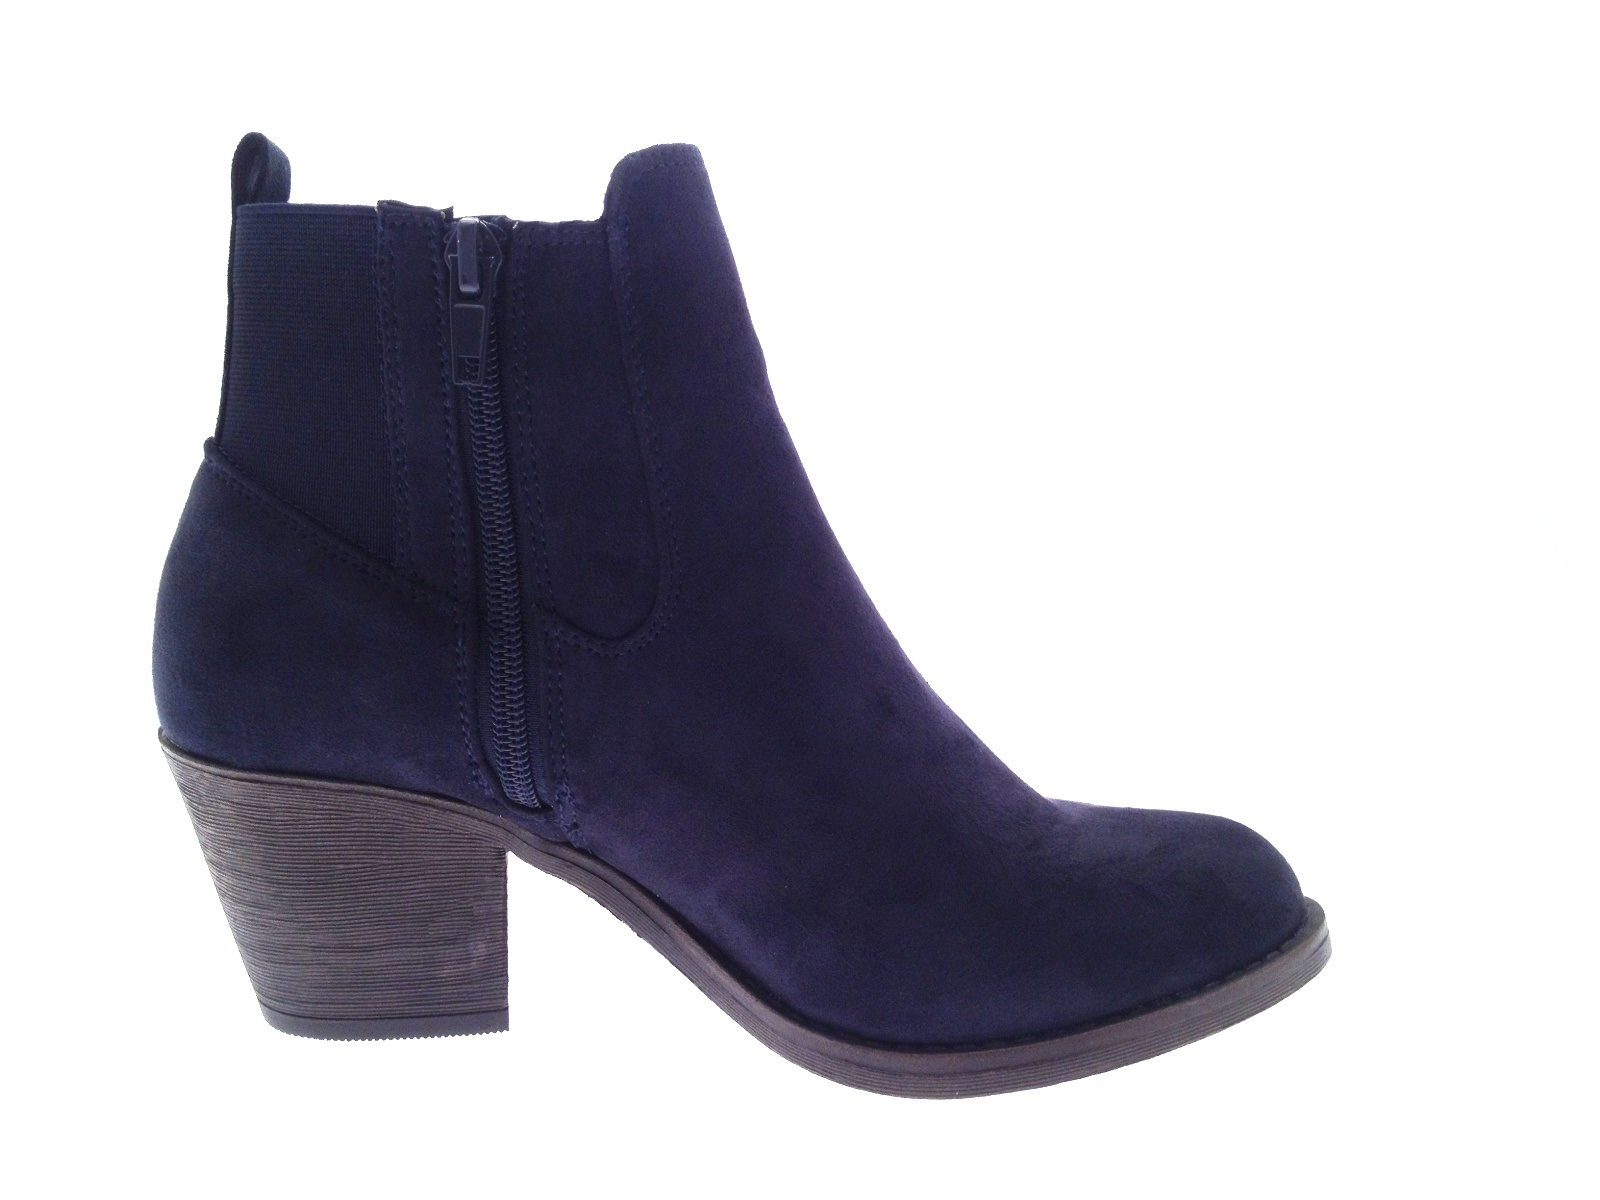 Lastest Womens Chunky Block Heel Chelsea Ankle Boots Faux Suede Shoes Girls Size UK 4-8 | EBay